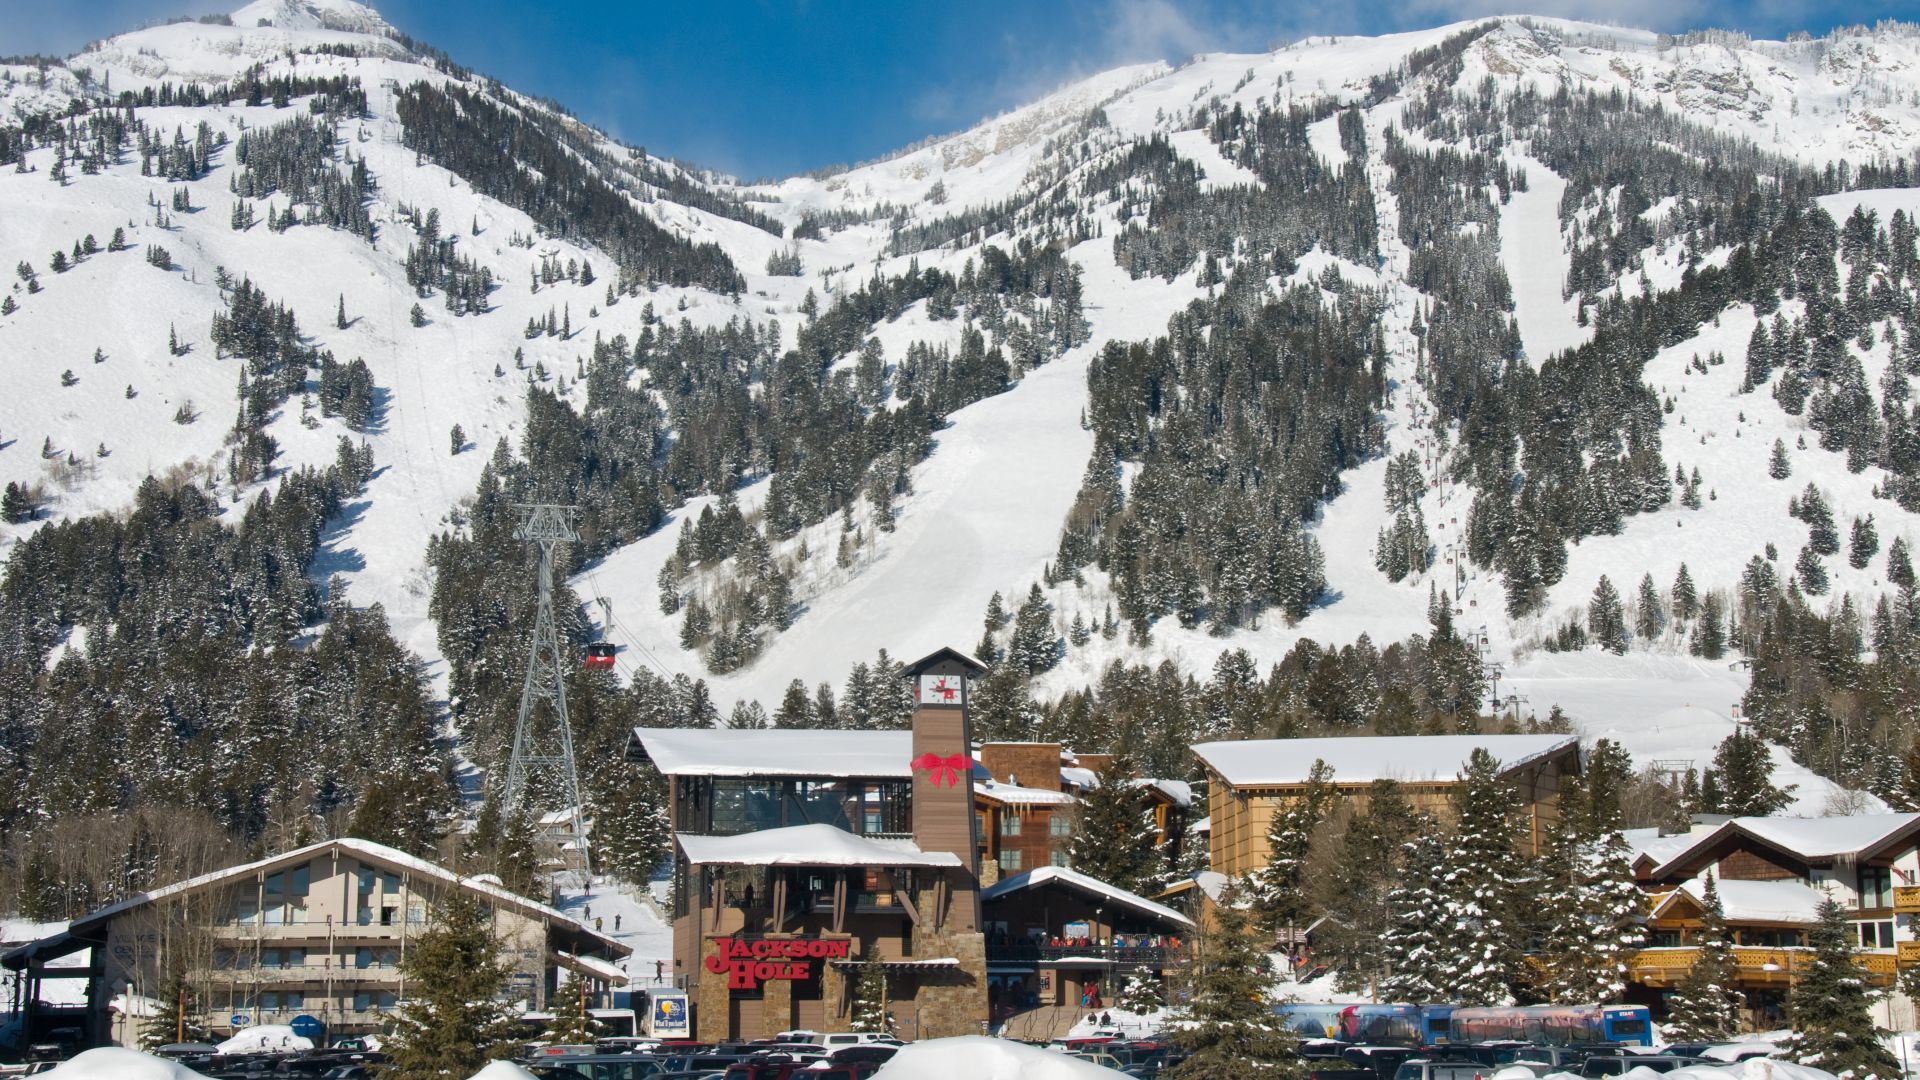 jackson hole mountain resort vacations ski trips